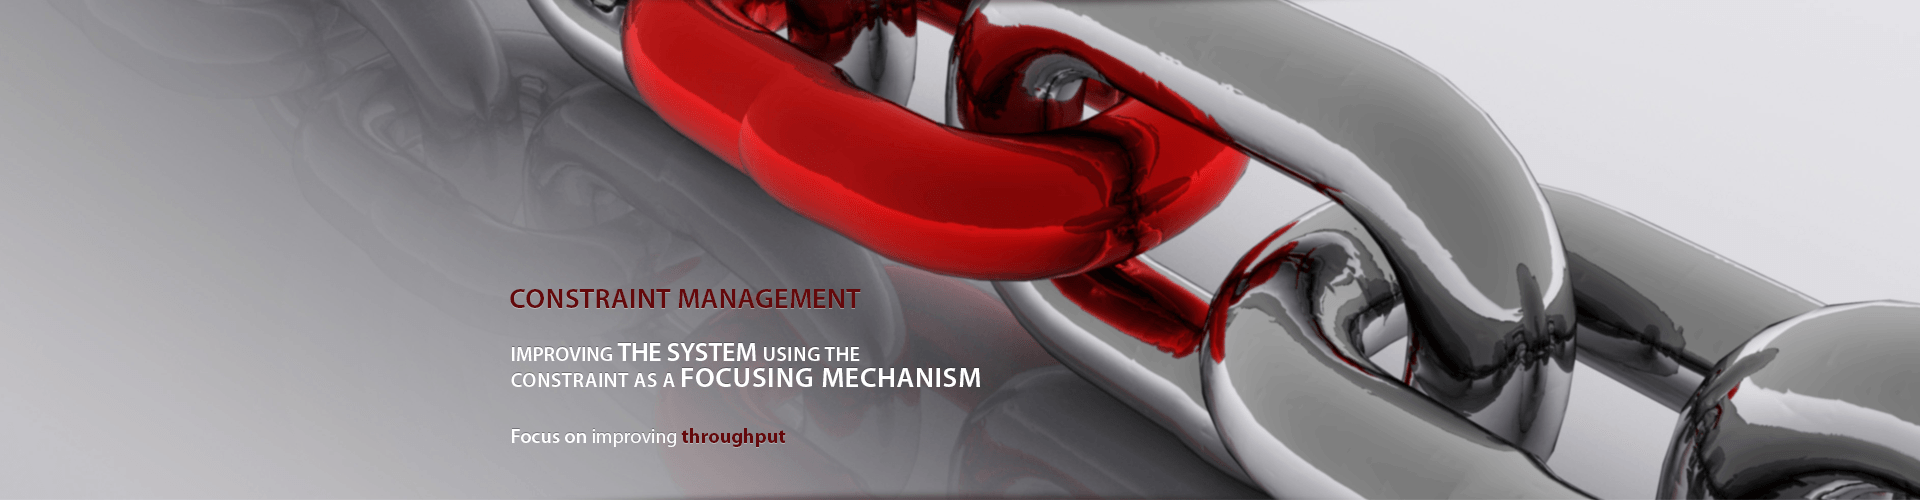 Constraint Management - Improving the system using the constraint as a focusing mechanism